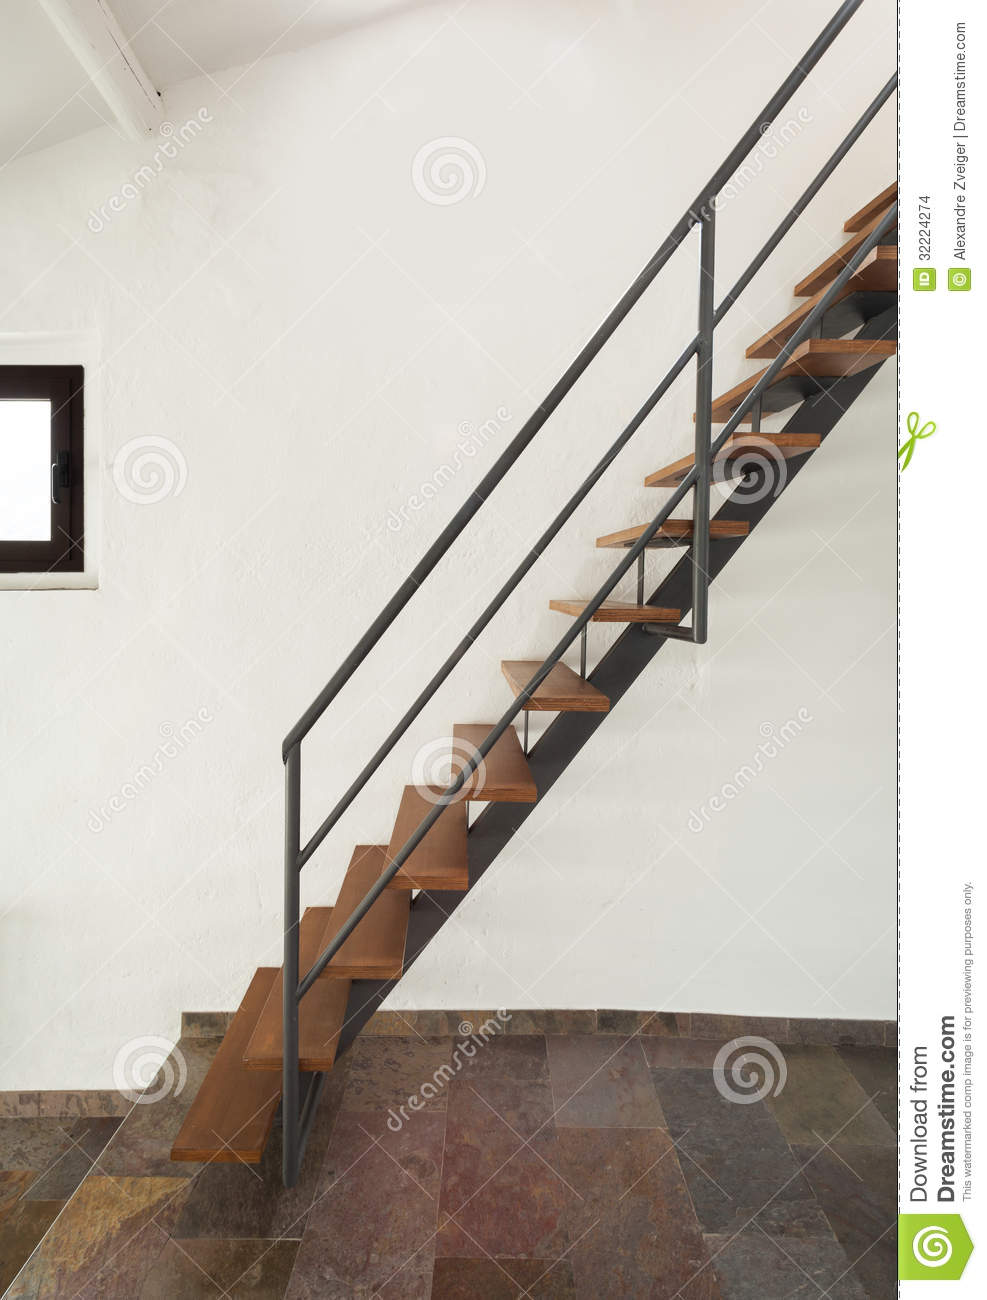 Interior Rustic House, Stairs Stock Images - Image: 32224274